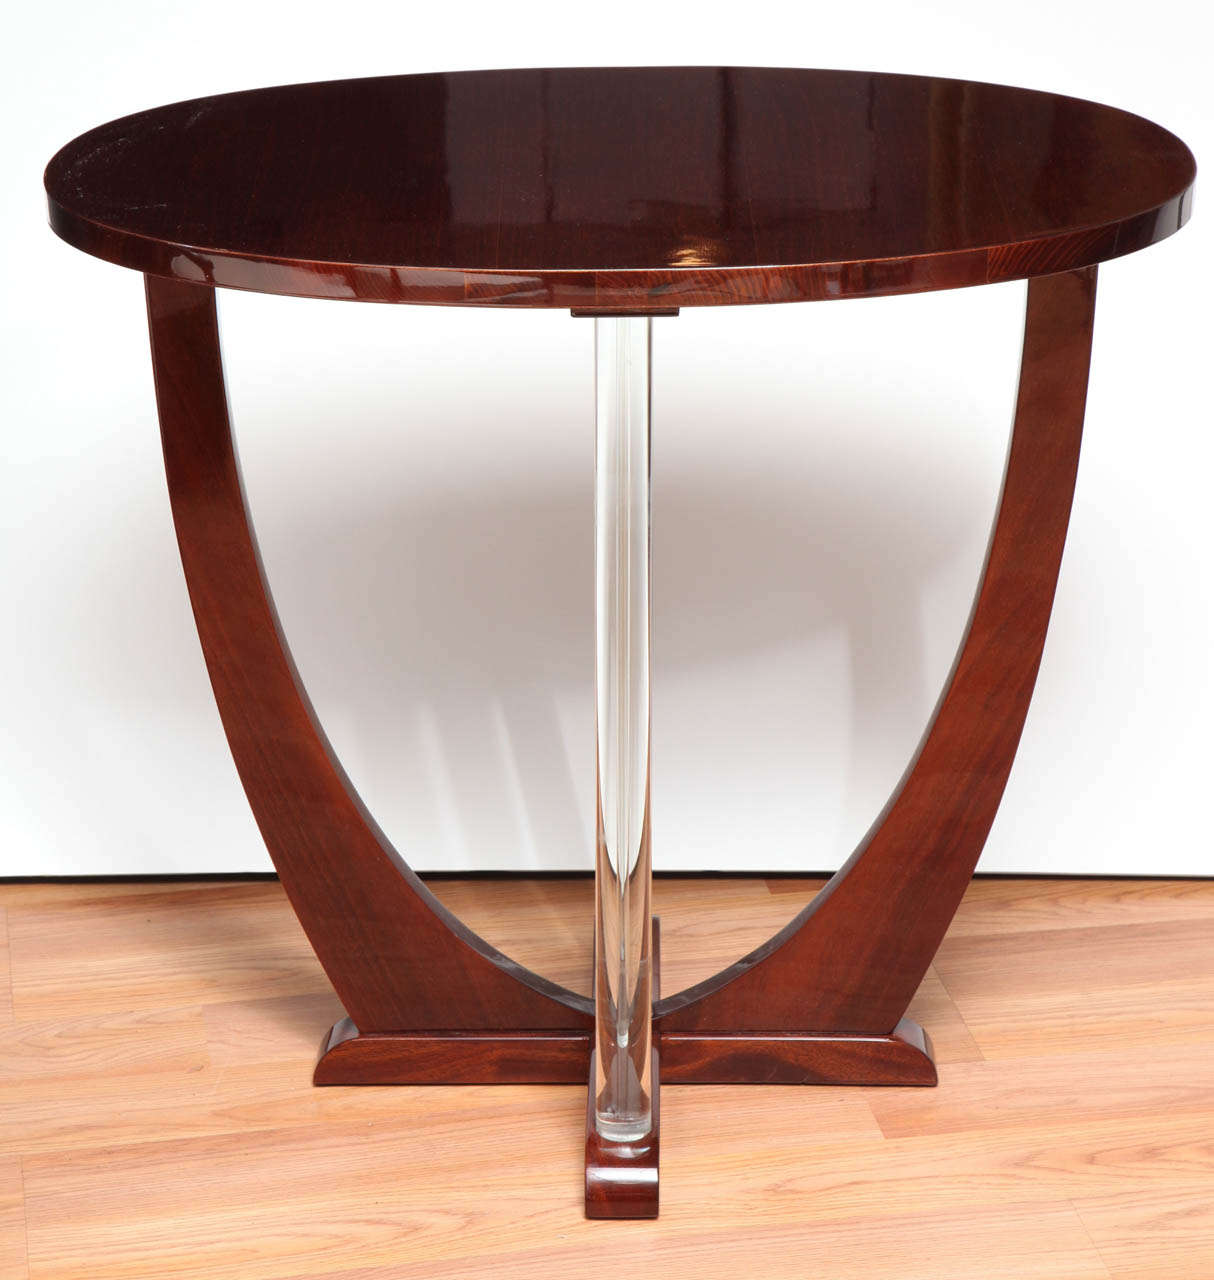 Machine Age Art Deco Oval Glass Rod Lamp Table At 1stdibs